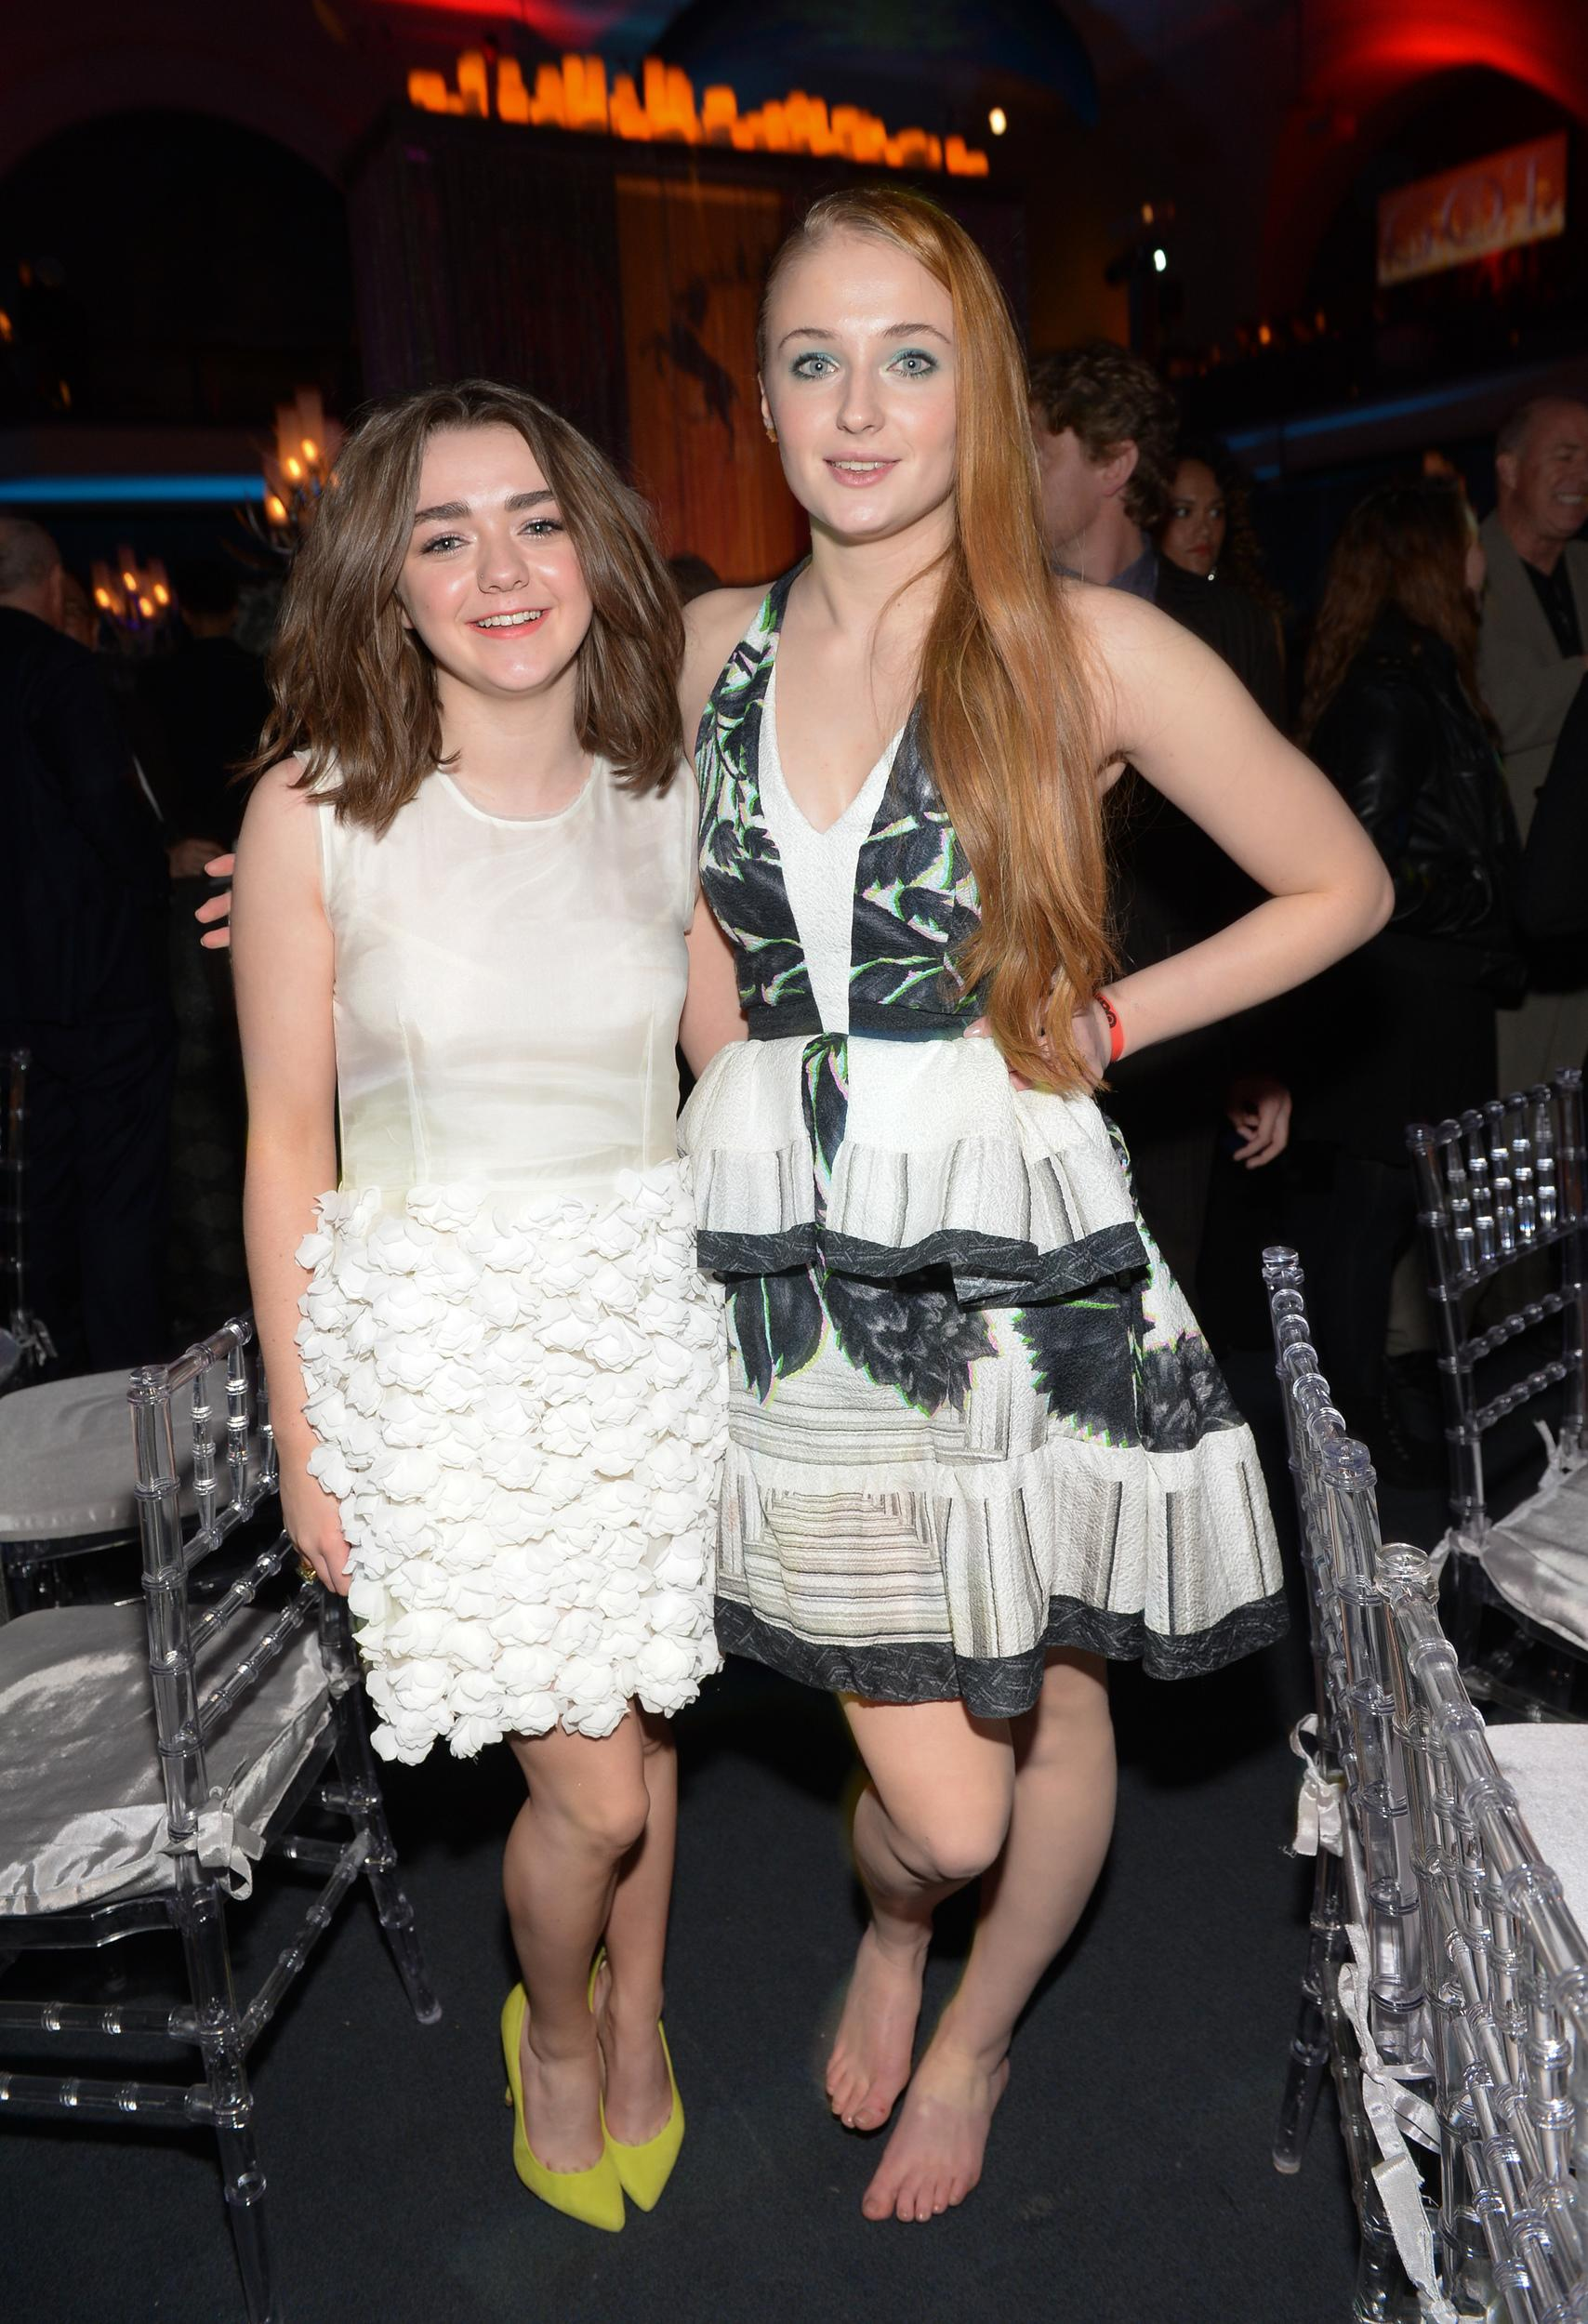 """Actors Maisie Williams, left, and Sophie Turner attend HBO's """"Game of Thrones"""" fourth season premiere after party at the Museum of Natural History on Tuesday, March 18, 2014 in New York. (Photo by Evan Agostini/Invision/AP)"""